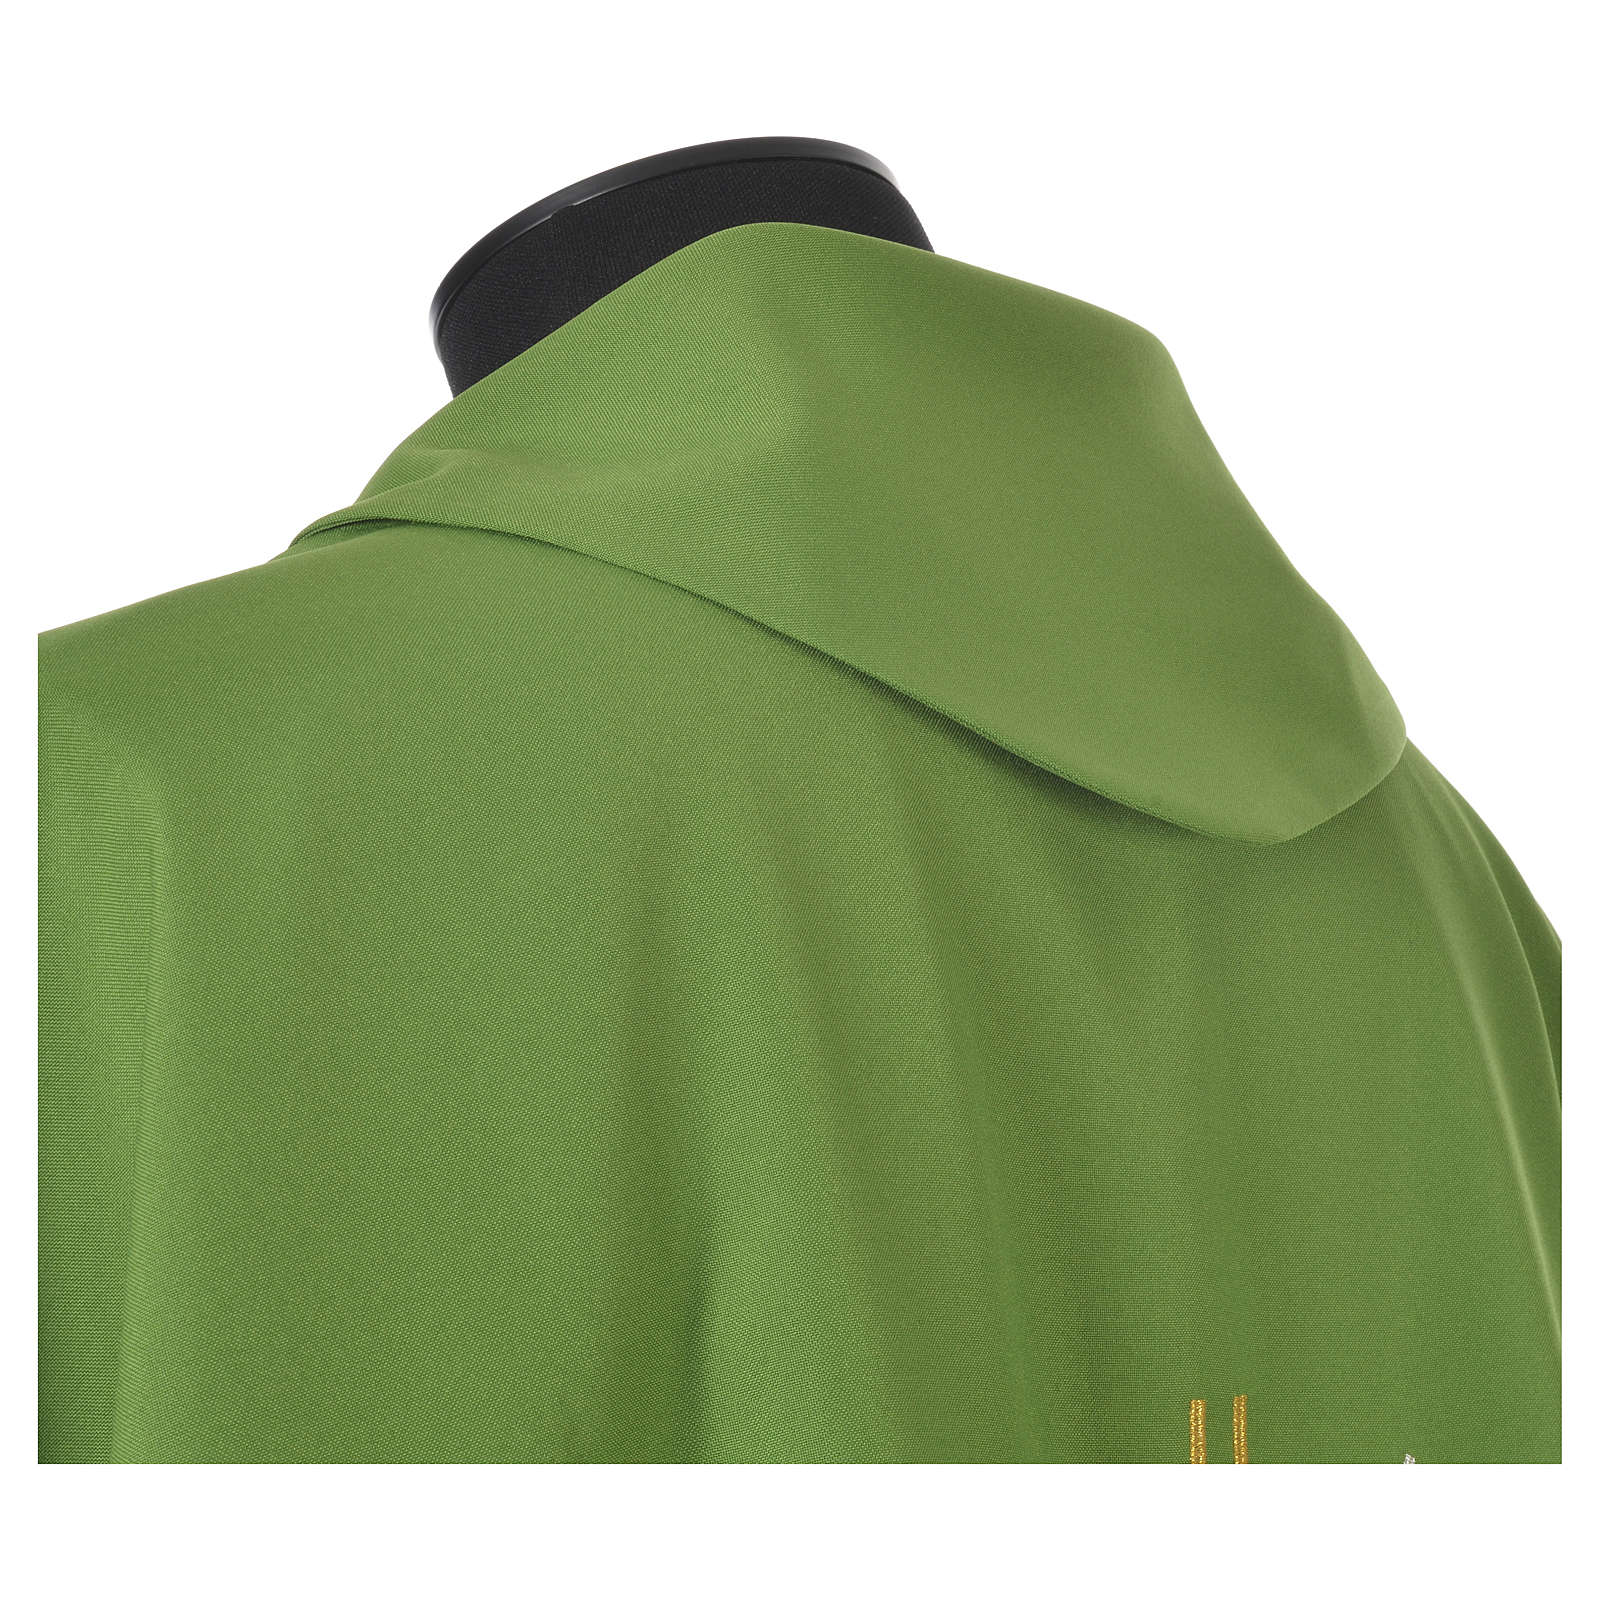 Chasuble croix stylisée avec rayons 100% polyester 4